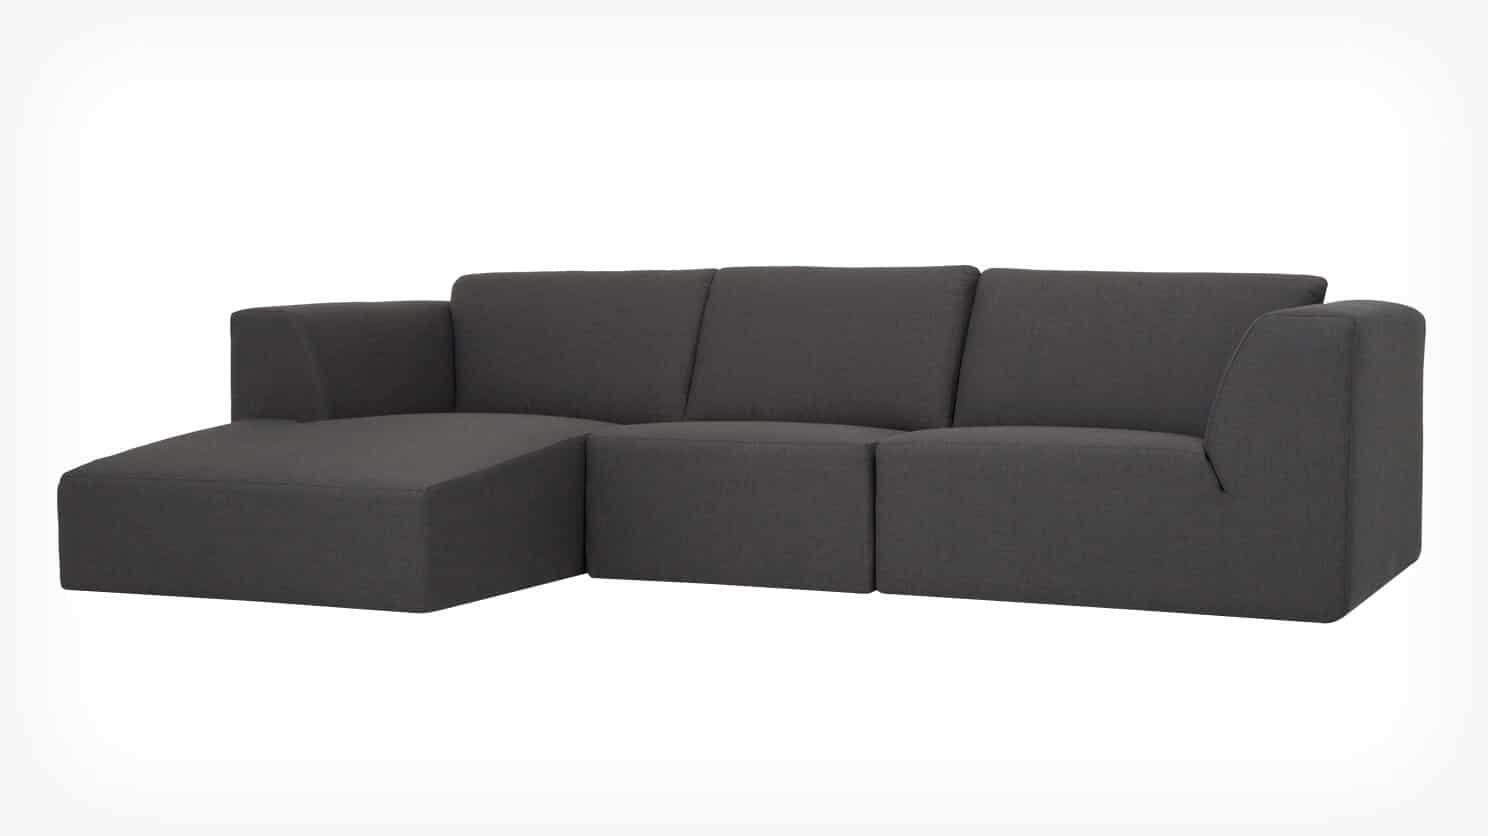 MORTEN 3-PIECE SECTIONAL SOFA W/CHAISE - D3 Home San Diego EQ3